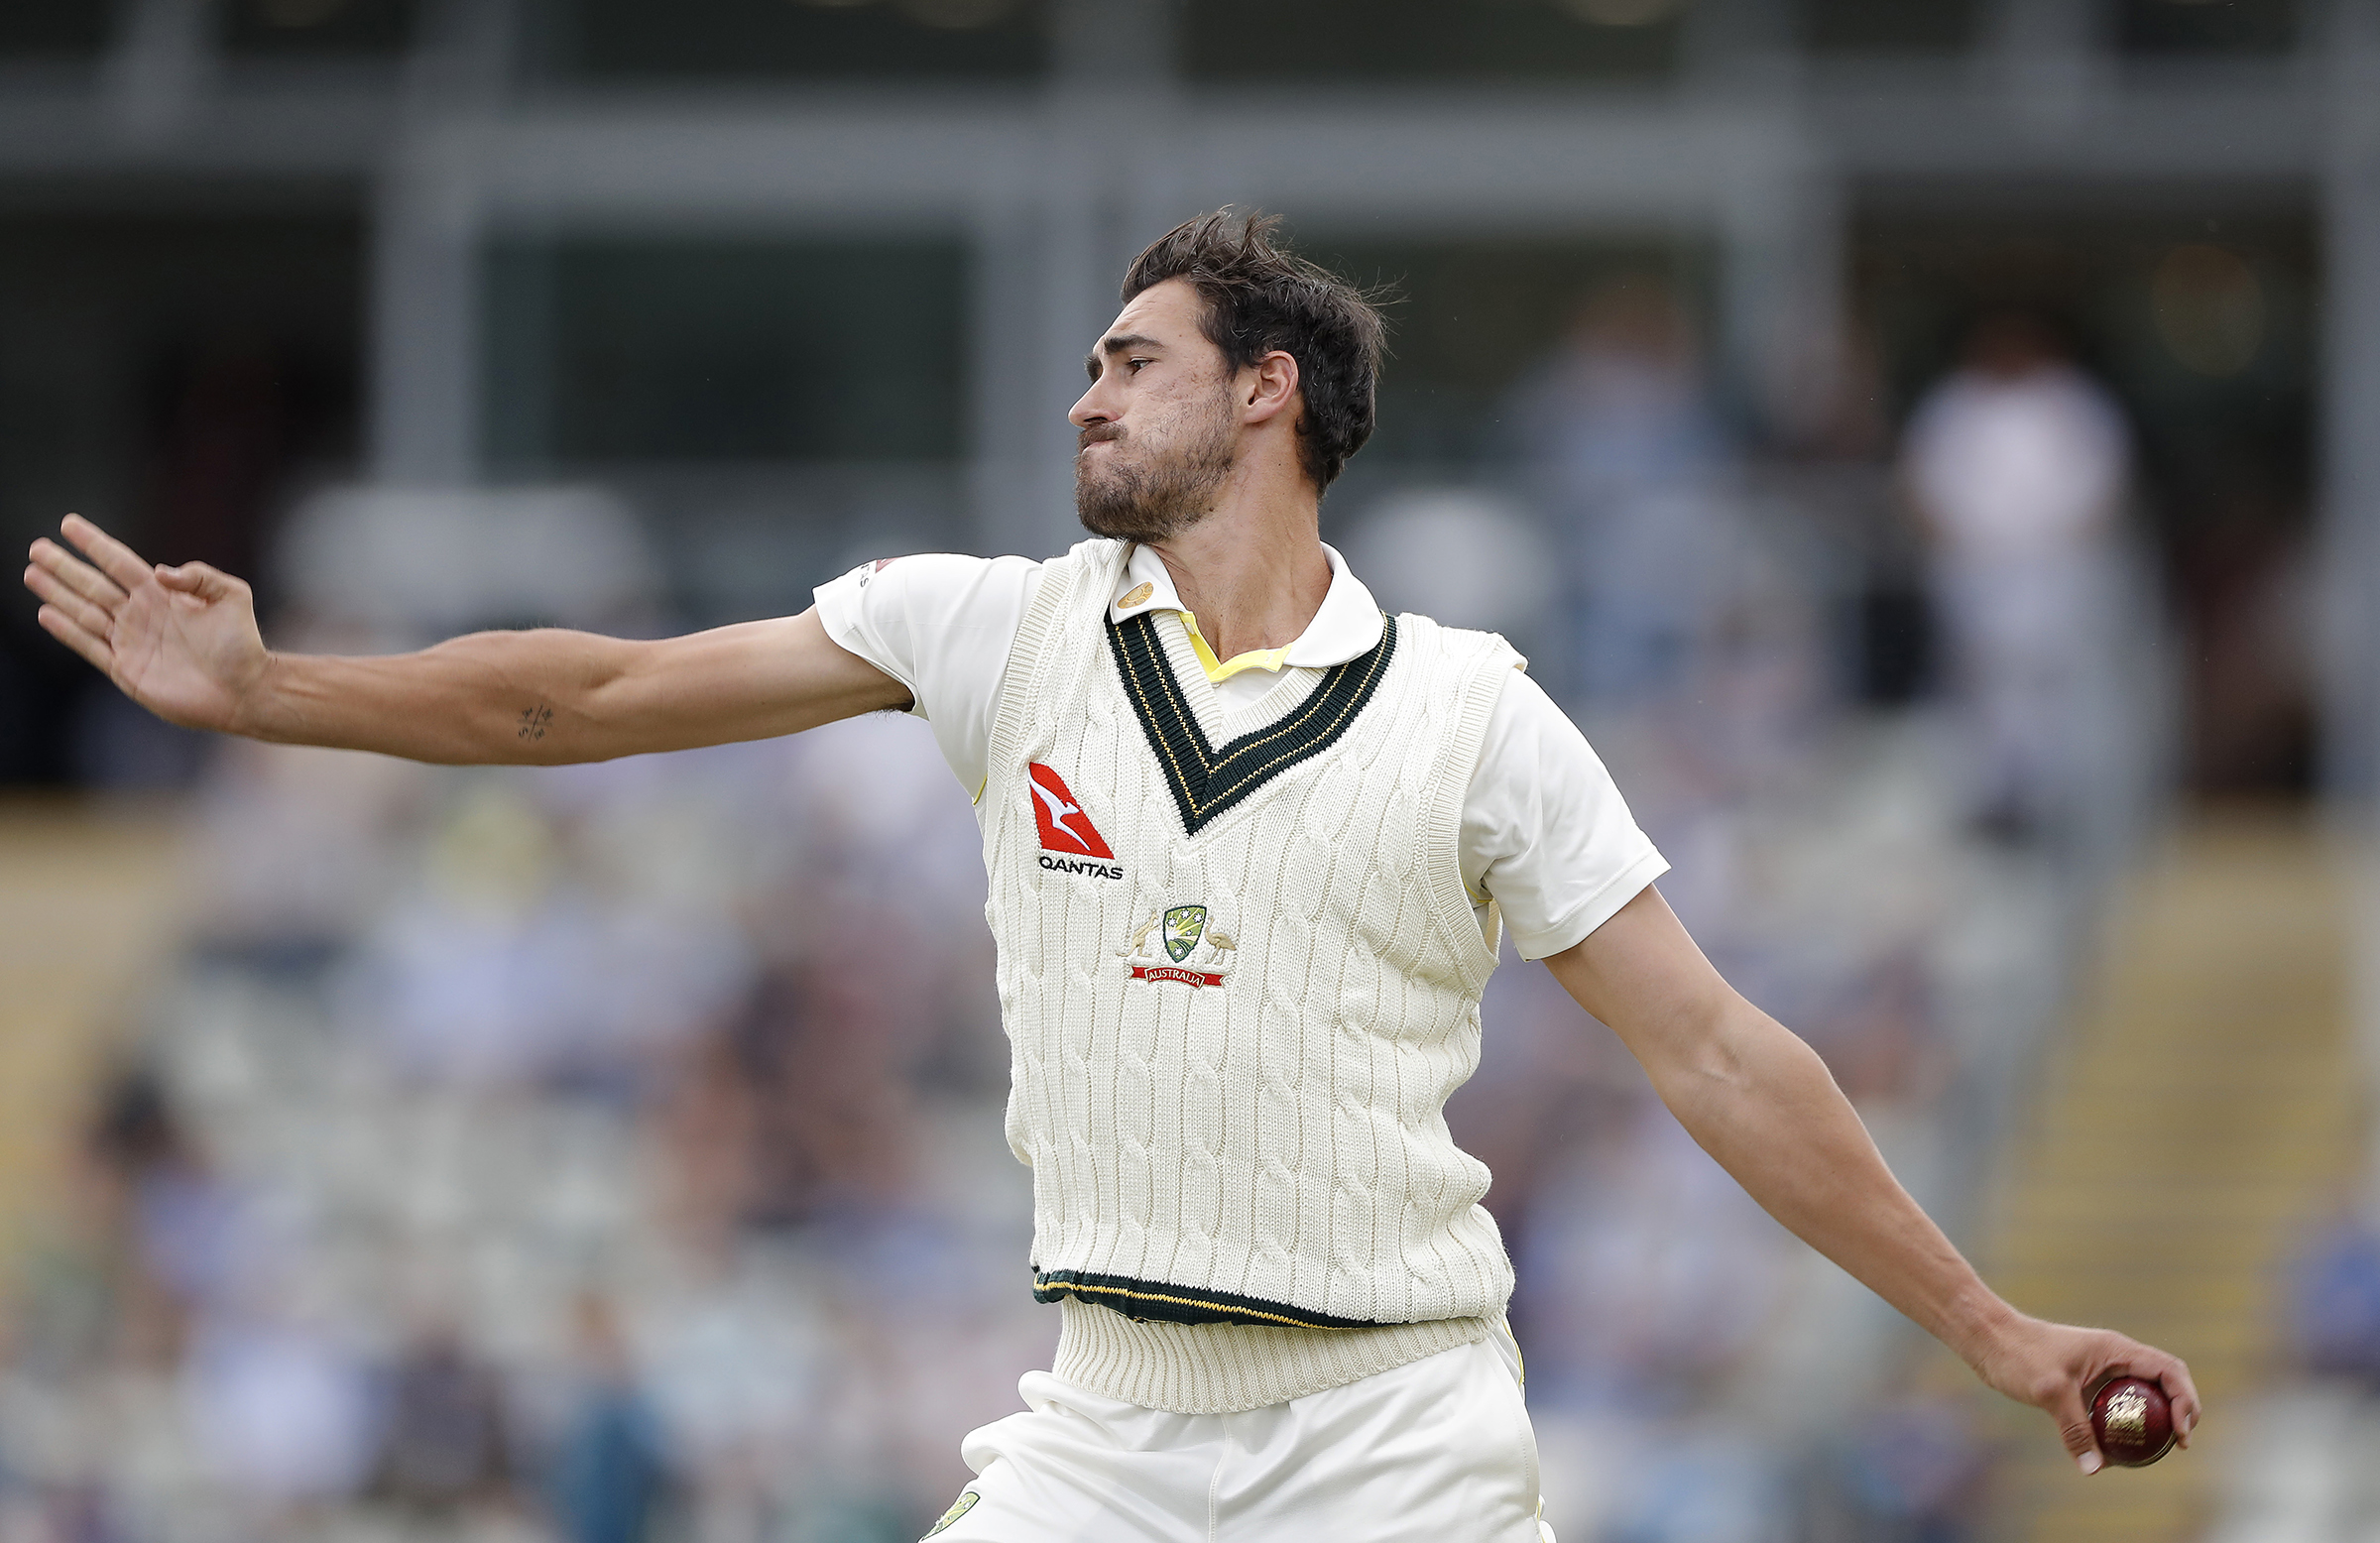 Starc took 2-56 from 15.5 overs // Getty